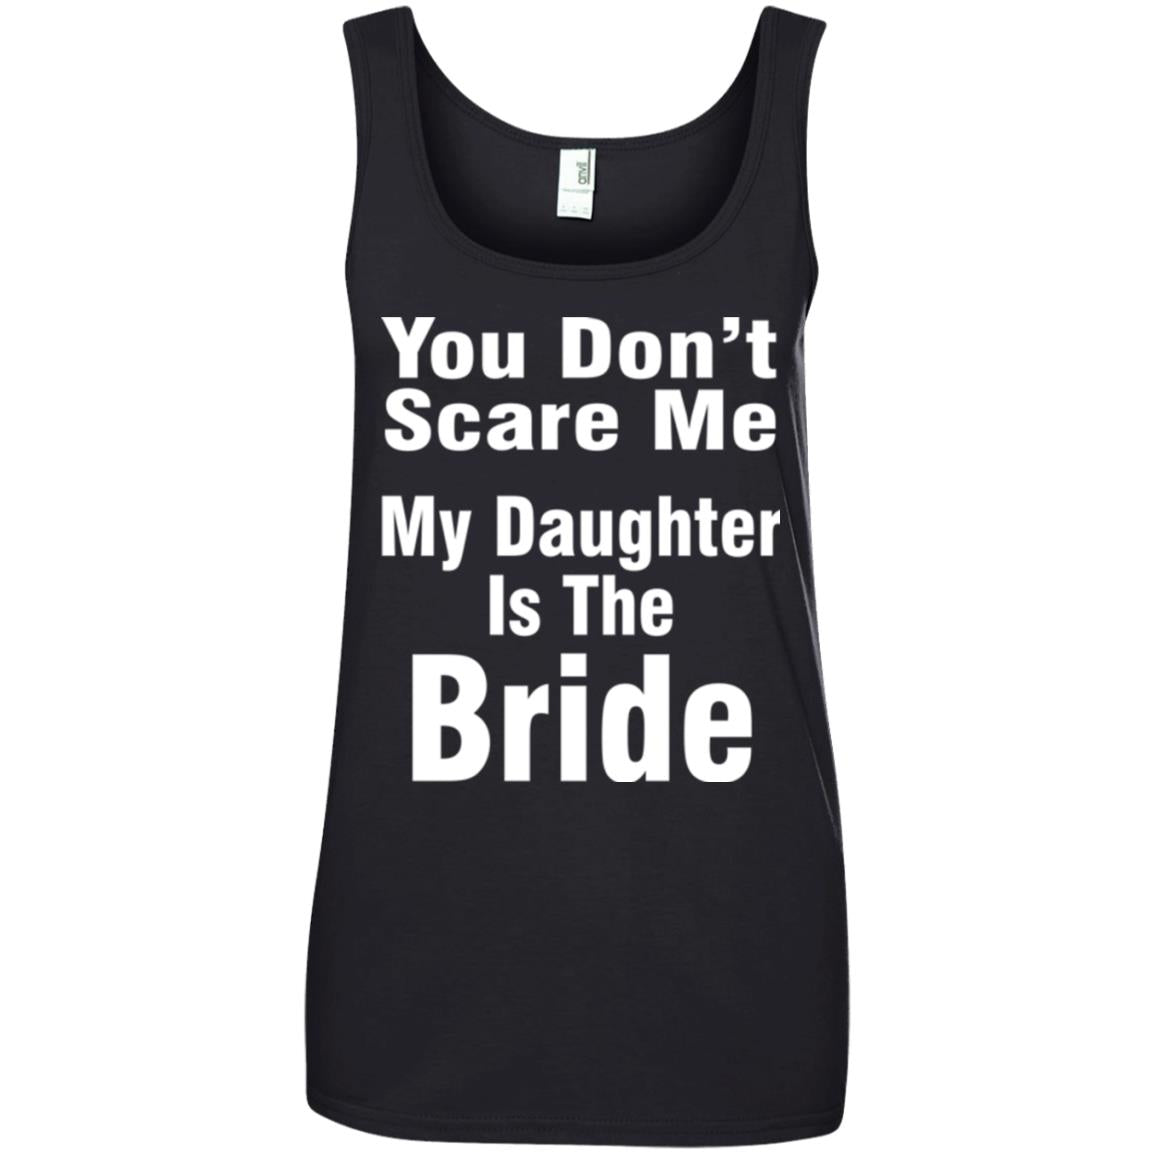 You Don't Scare Me My Daughter Is The Bride Ladies Tank Top